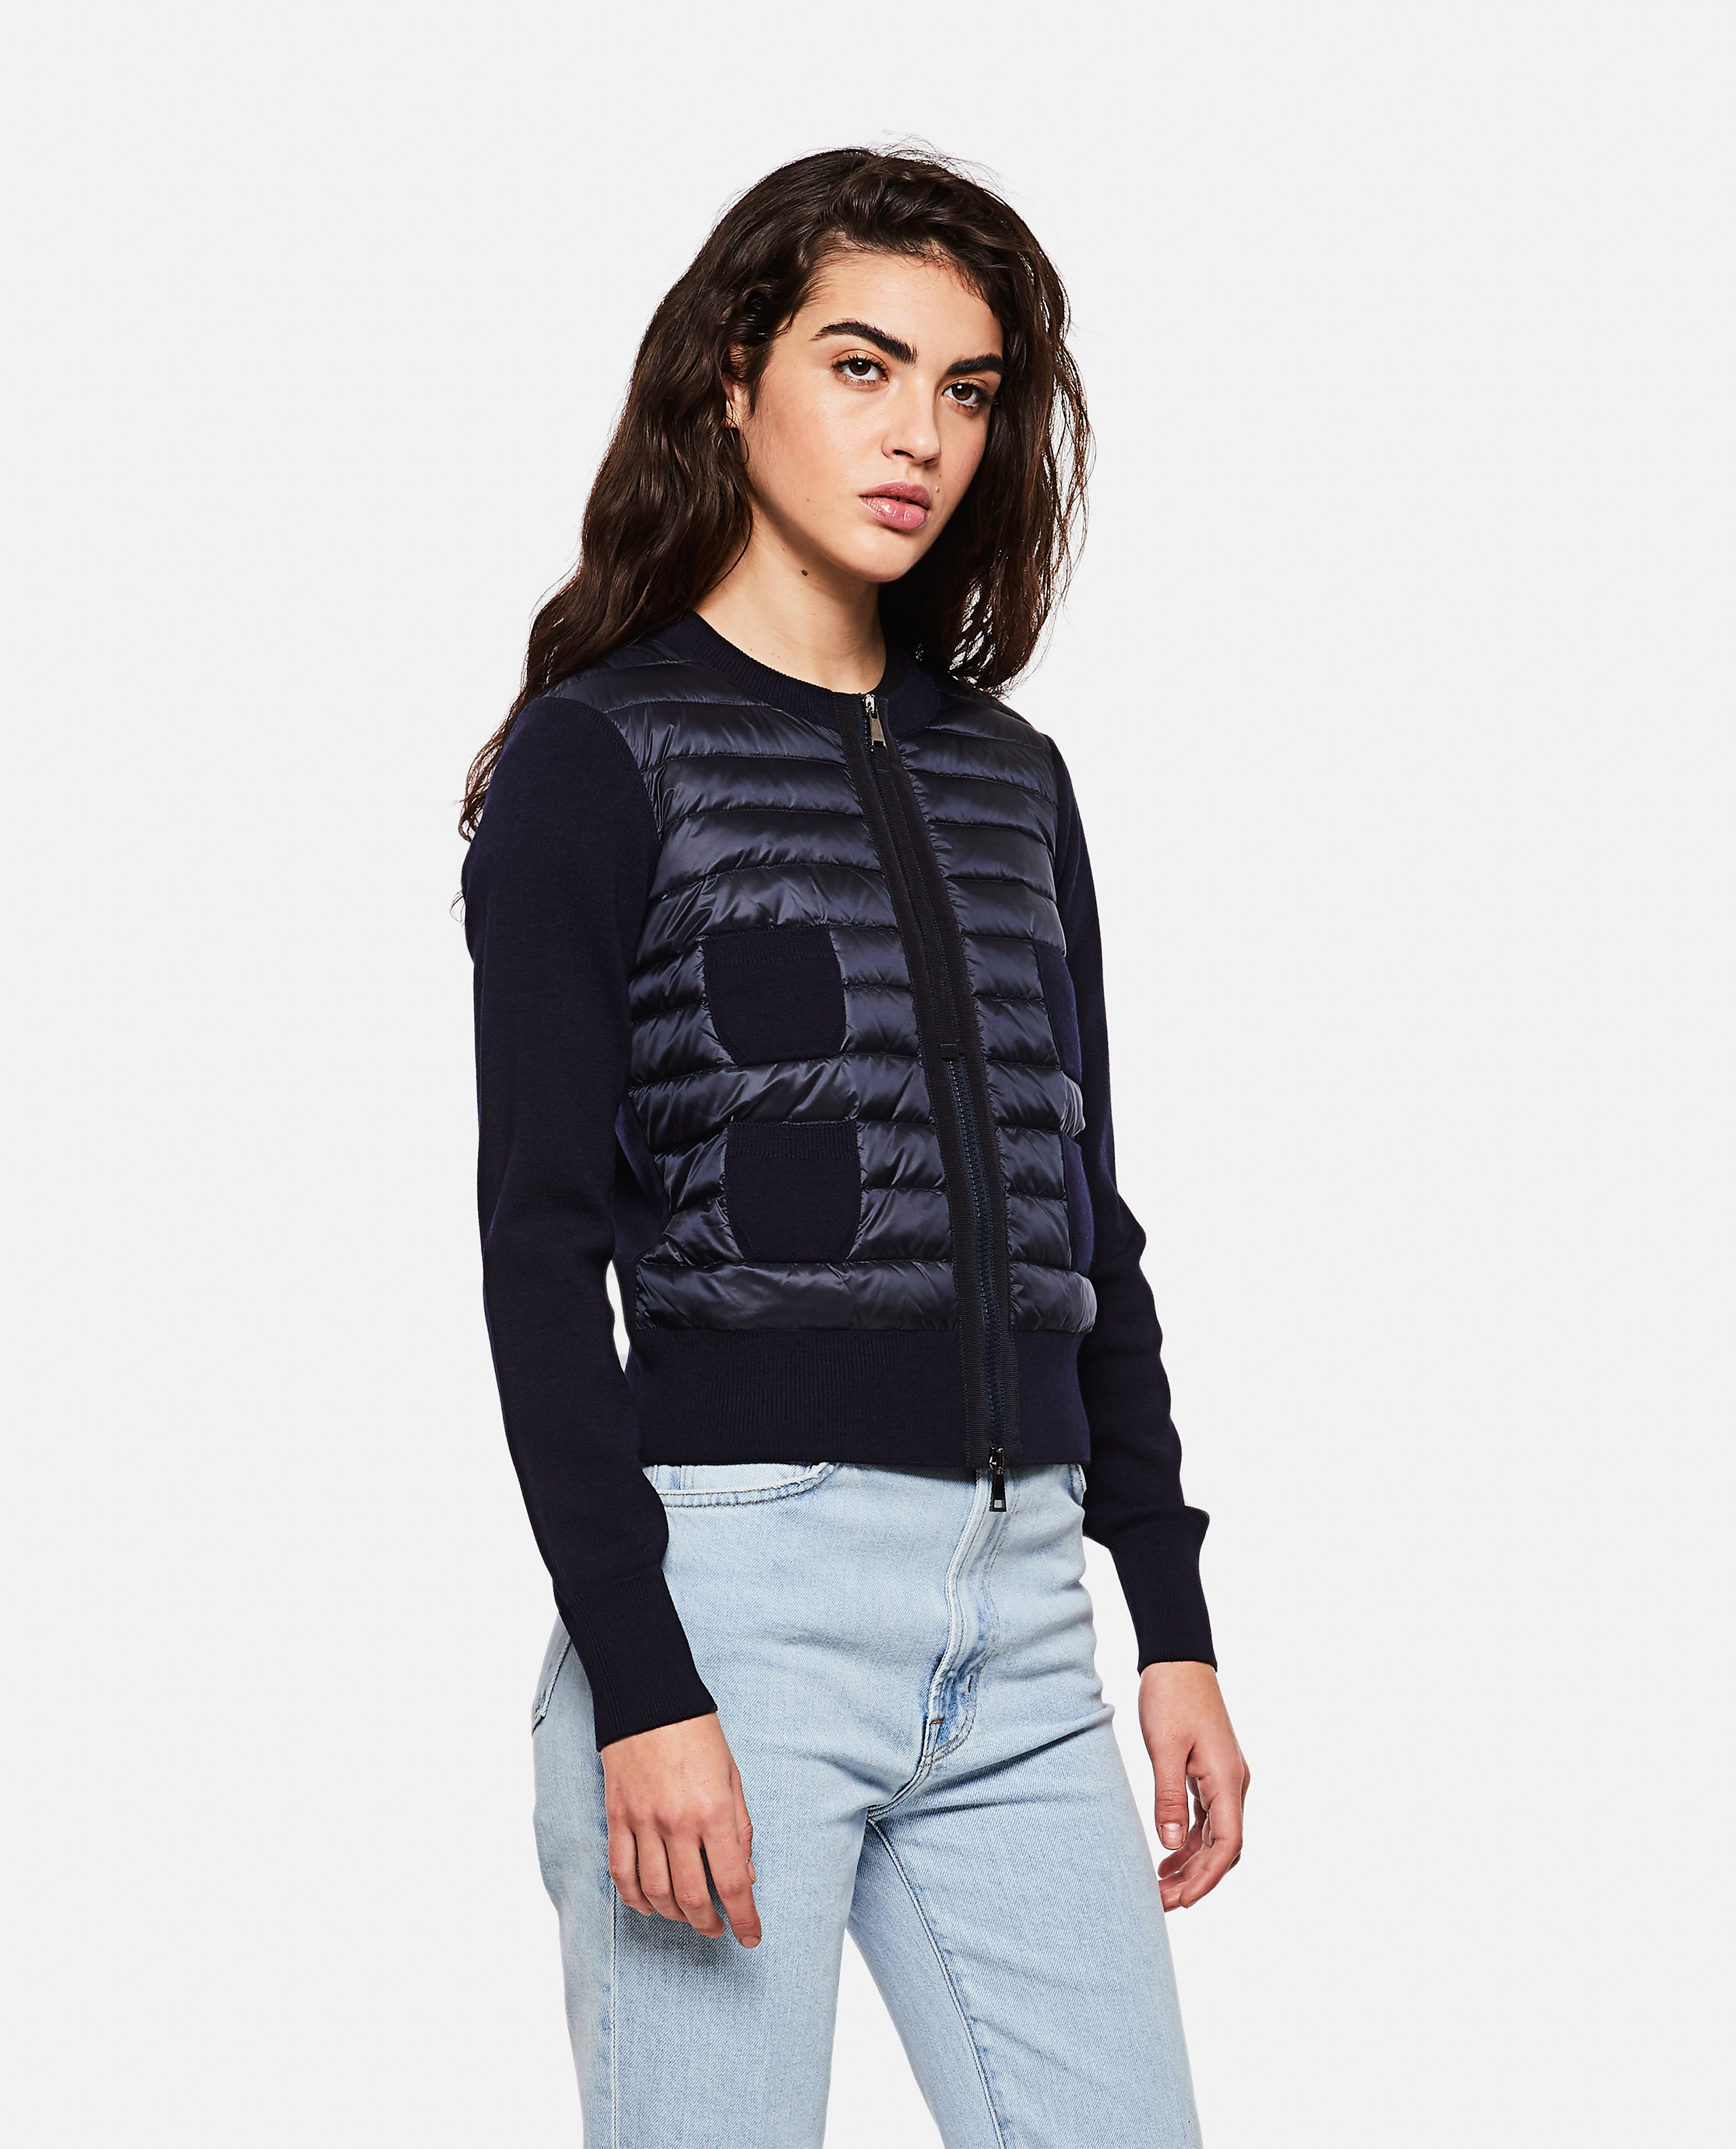 Knitted cardigan Women Moncler 000272090040113 1